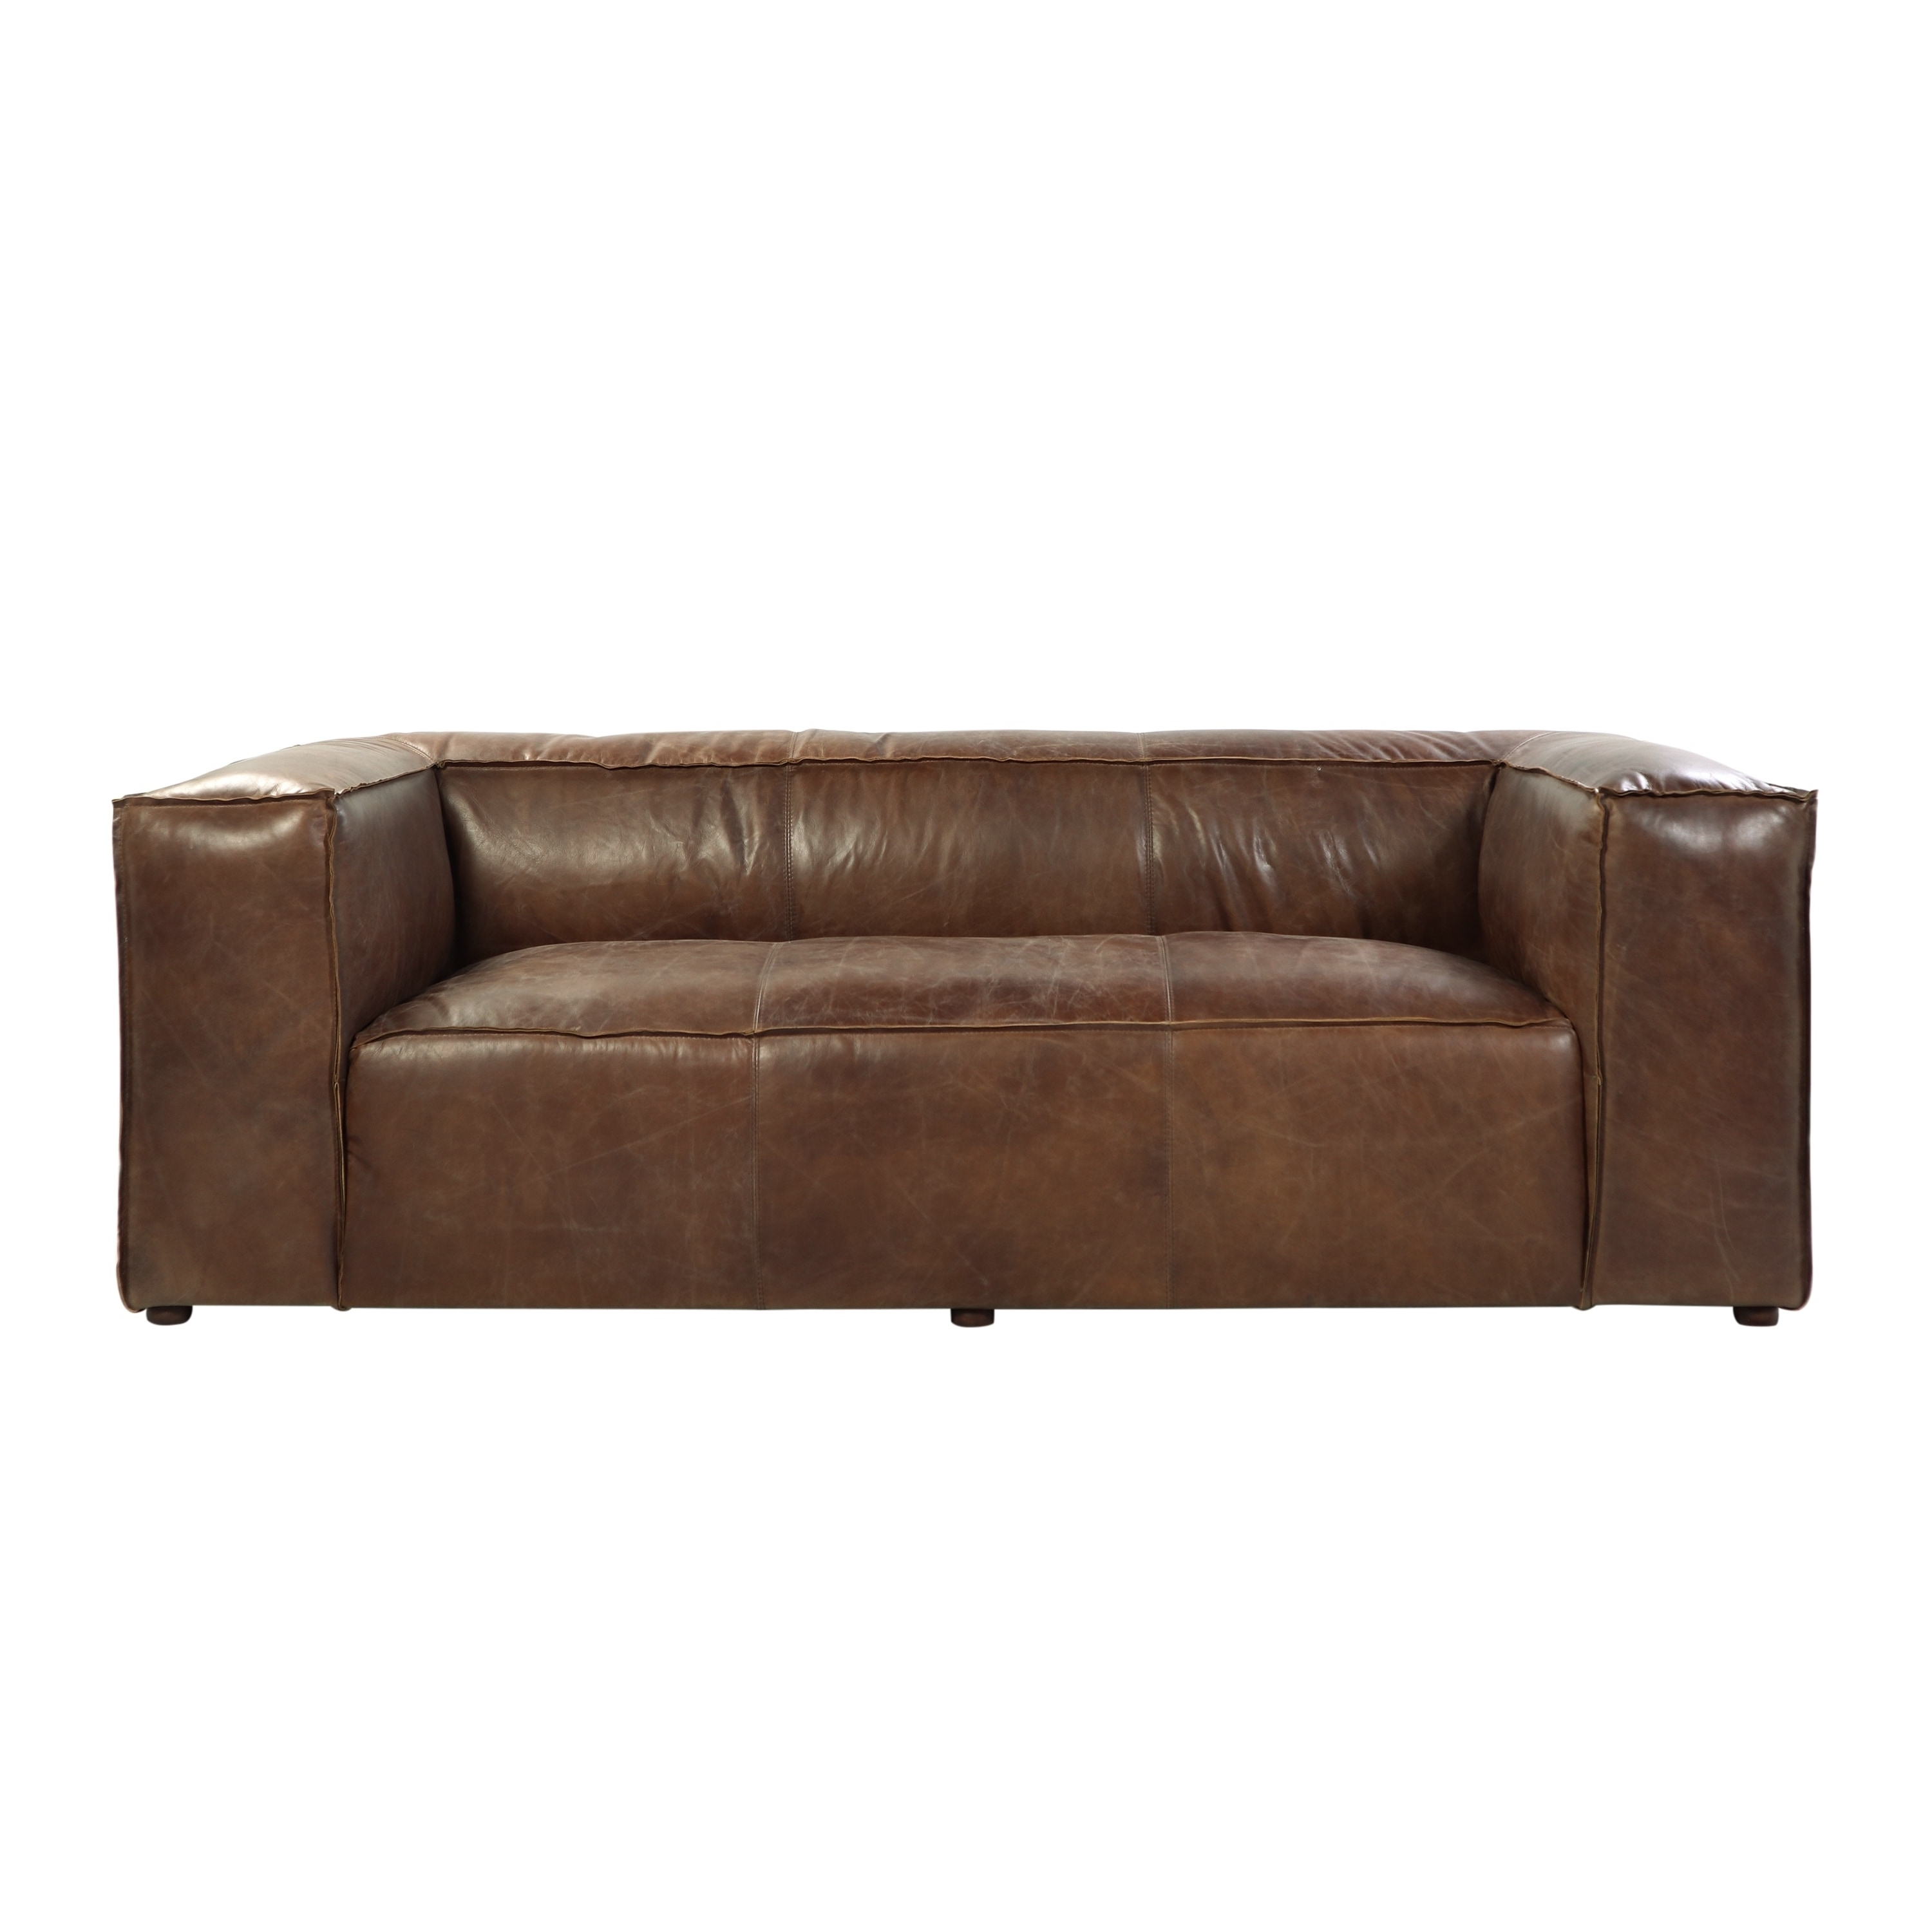 Well Liked Canterbury Leather Sofas Intended For Acme Furniture Brancaster Top Grain Leather Sofa, Retro Brown (View 20 of 20)